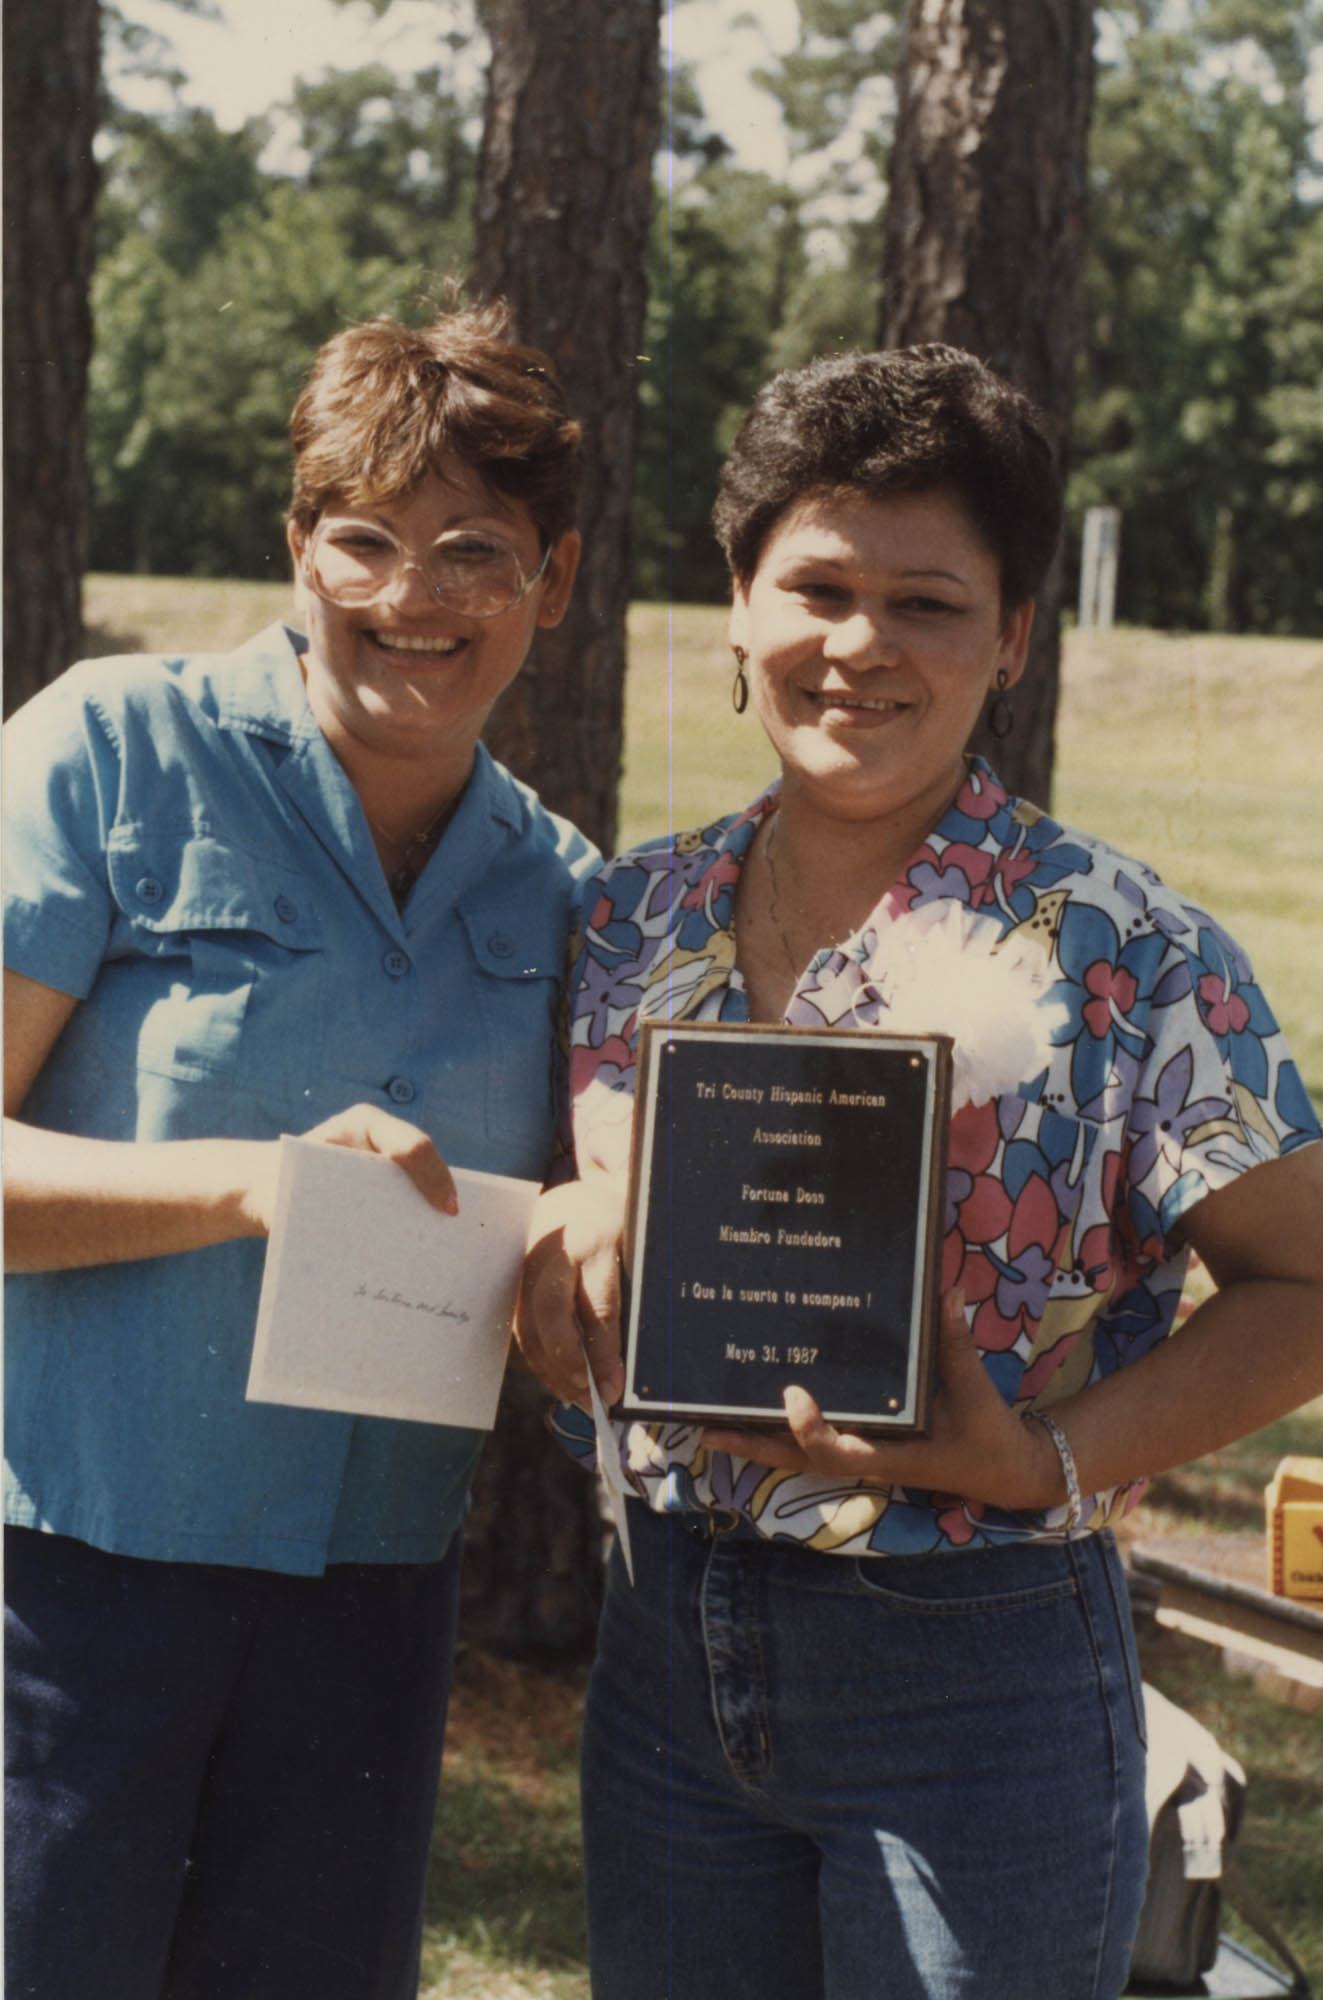 Fotografía de dos miembros de Tri-County Hispanic American Association  /  Photograph of Two Tri-County Hispanic American Association Members